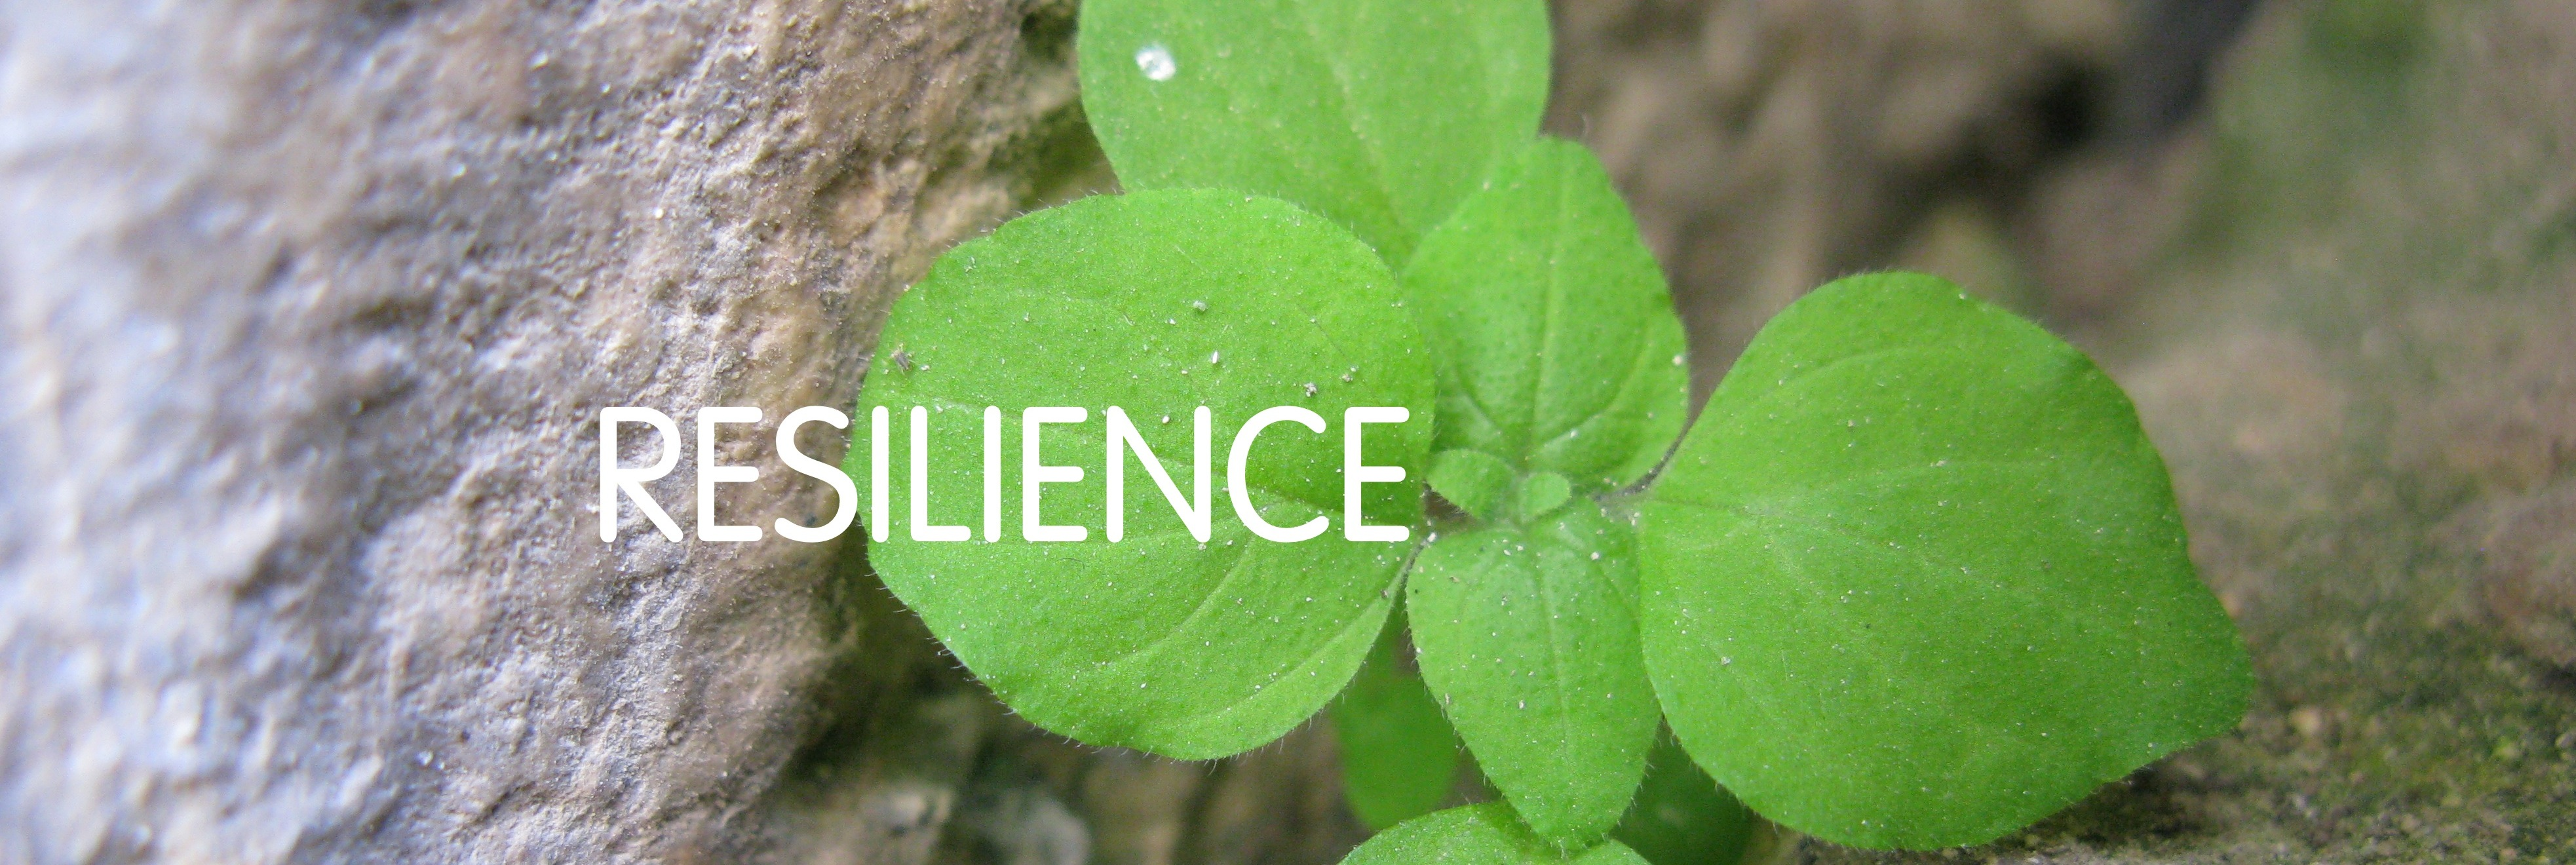 resilience in ngos